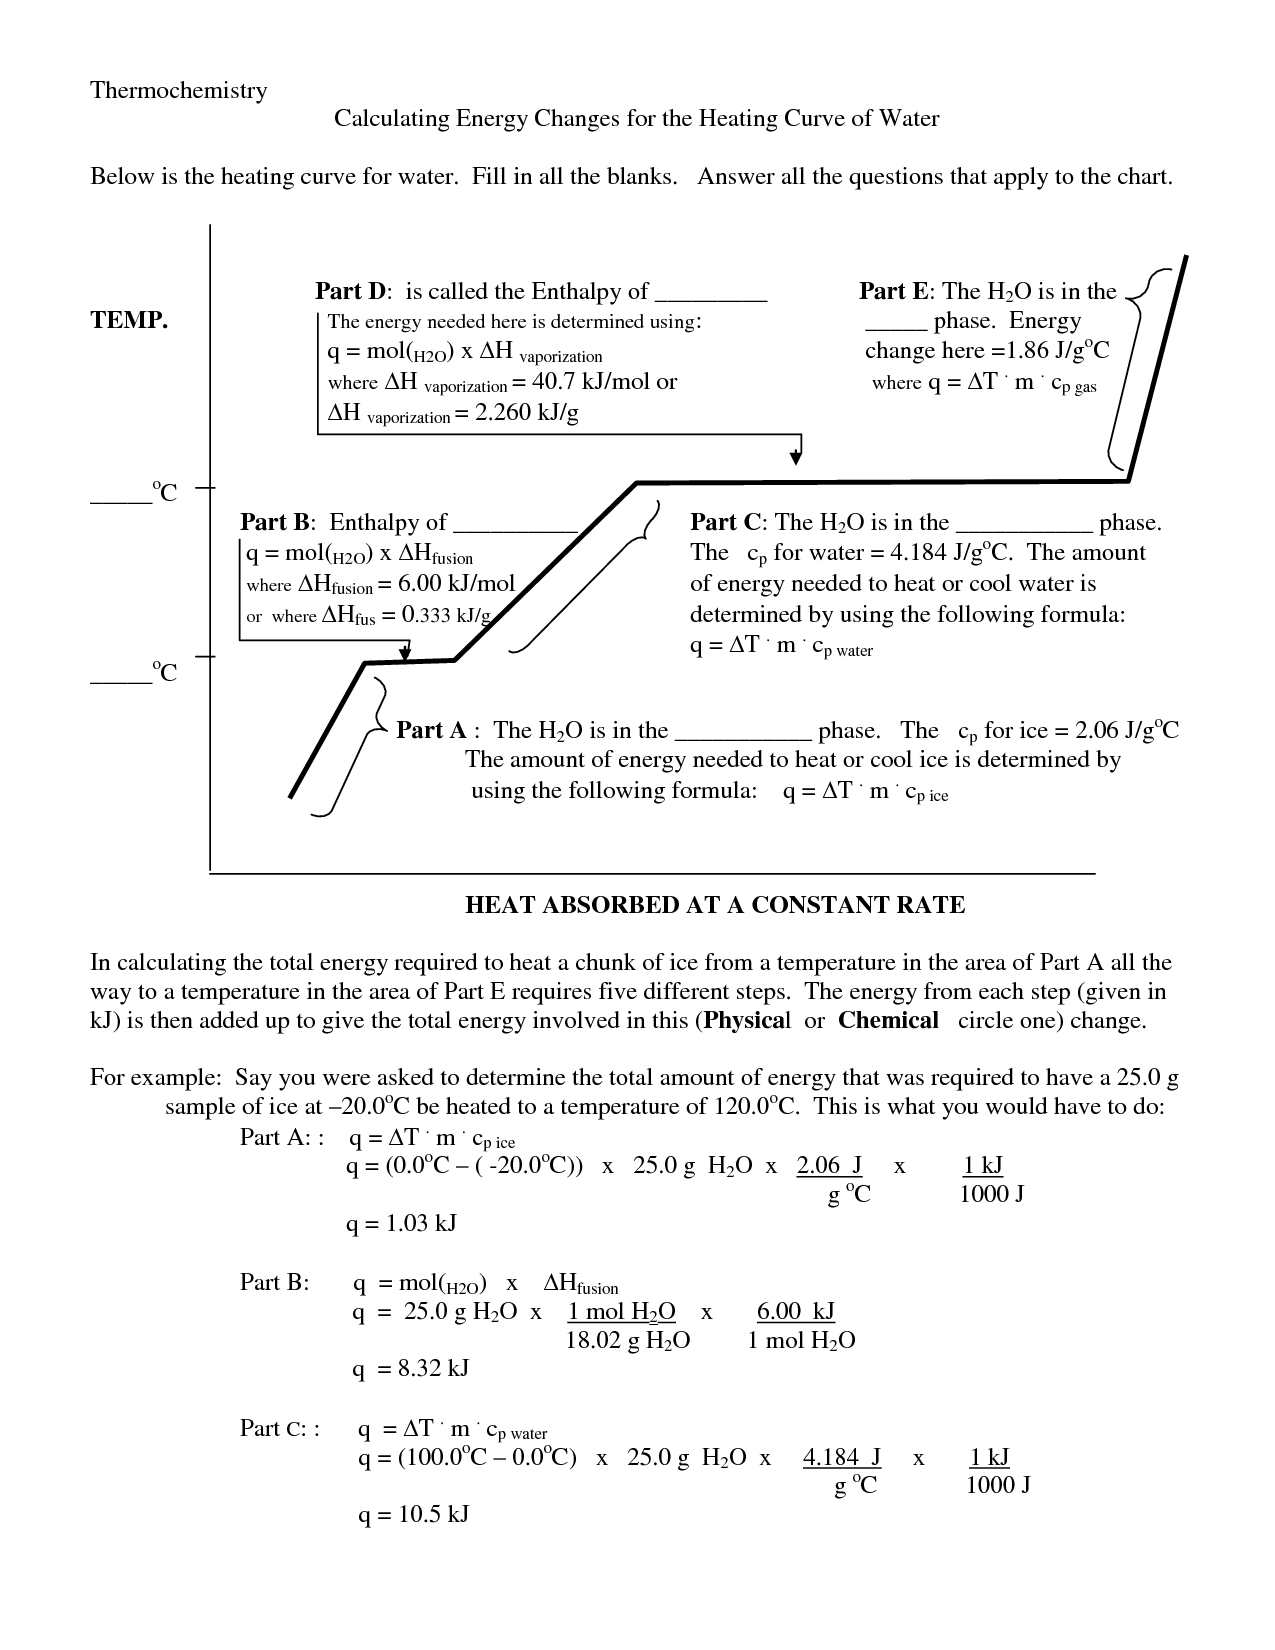 Worksheet Heating Curve Worksheet Answers Worksheet Fun